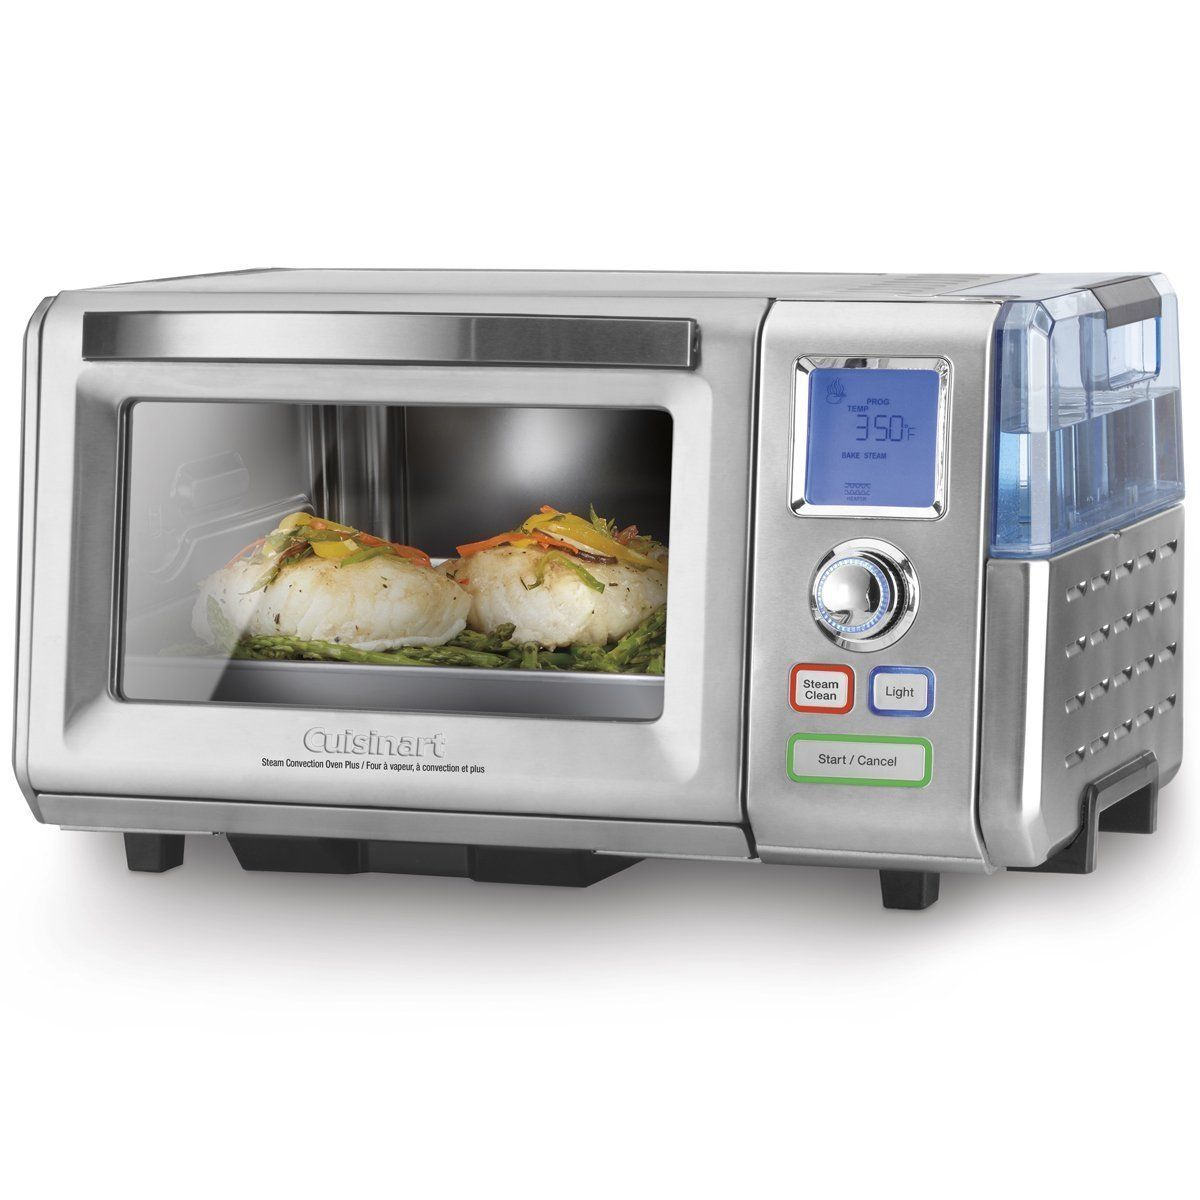 Cuisinart Cso 300n Convection Steam Oven Stainless Steel This Is An